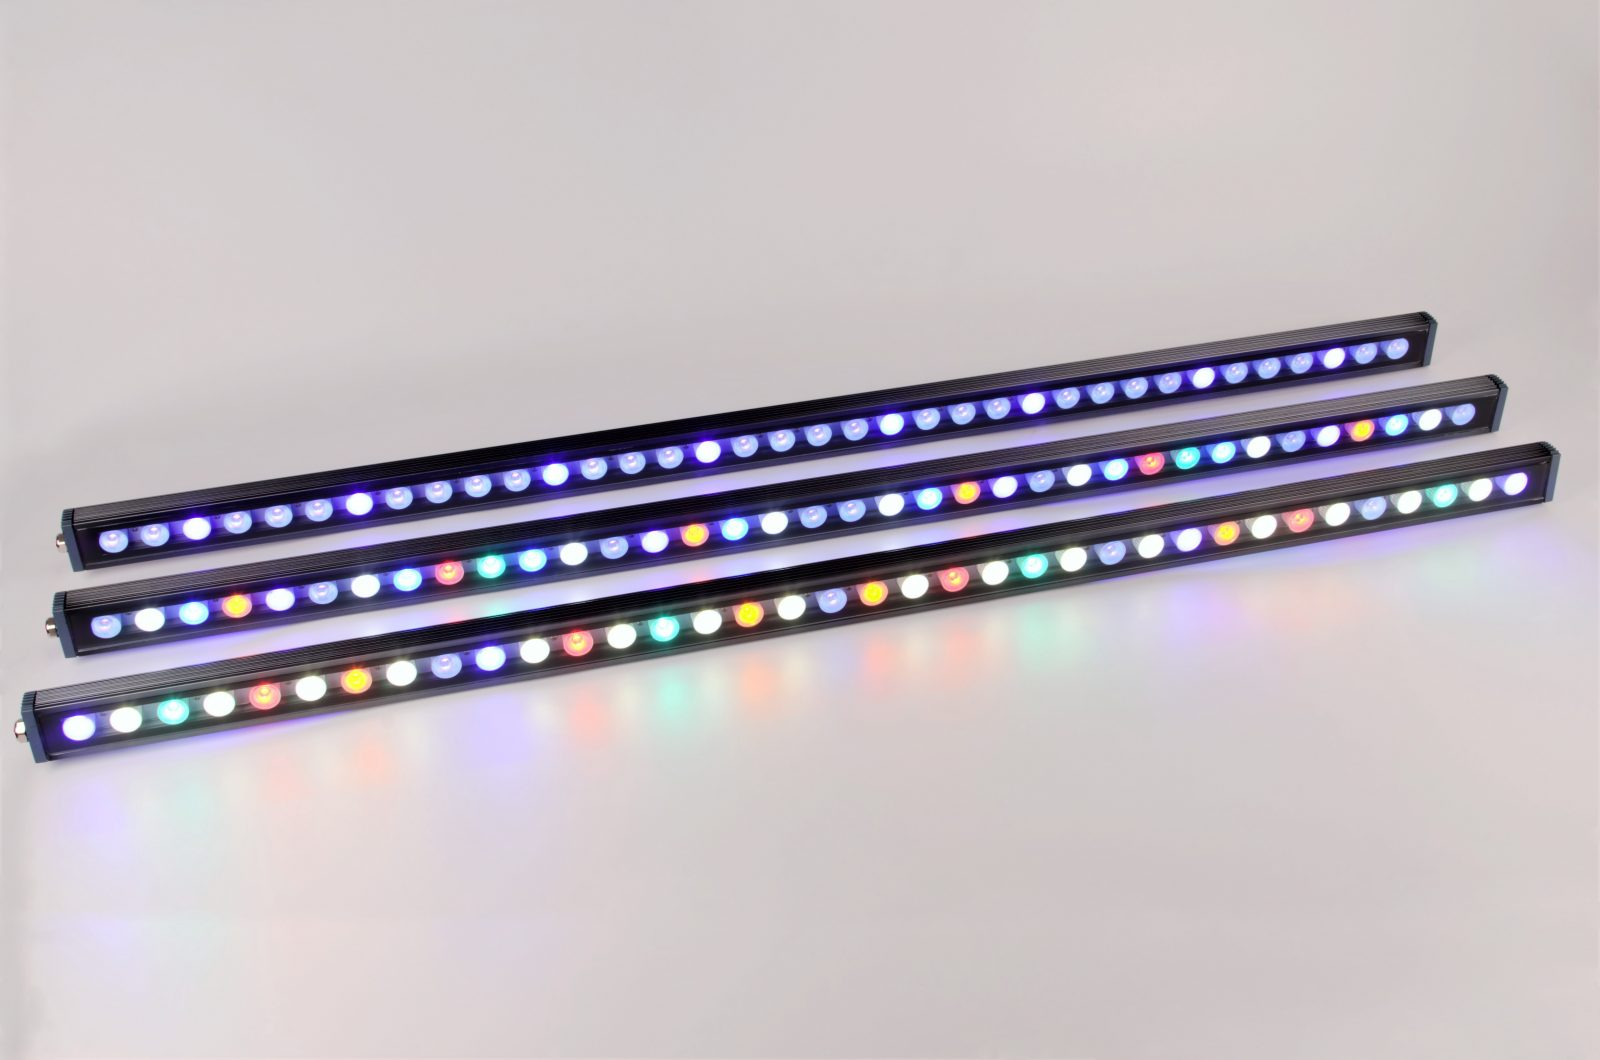 Aquarium bar strip LED-belysning